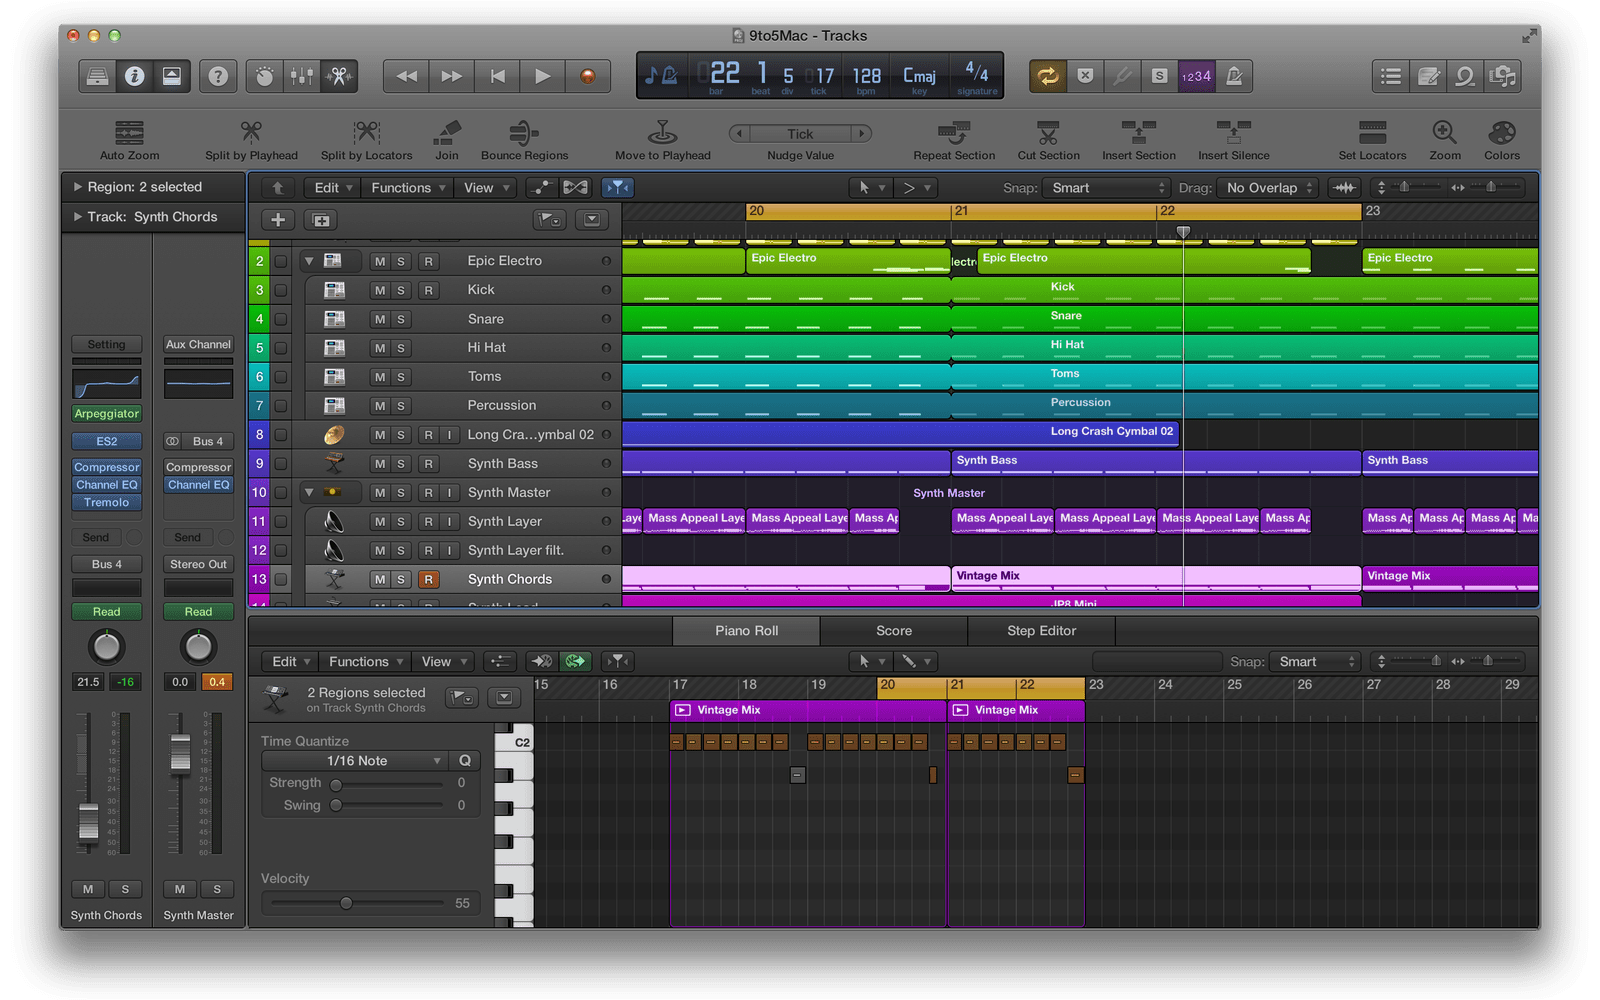 Logic pro x logo png. Review powerful new features